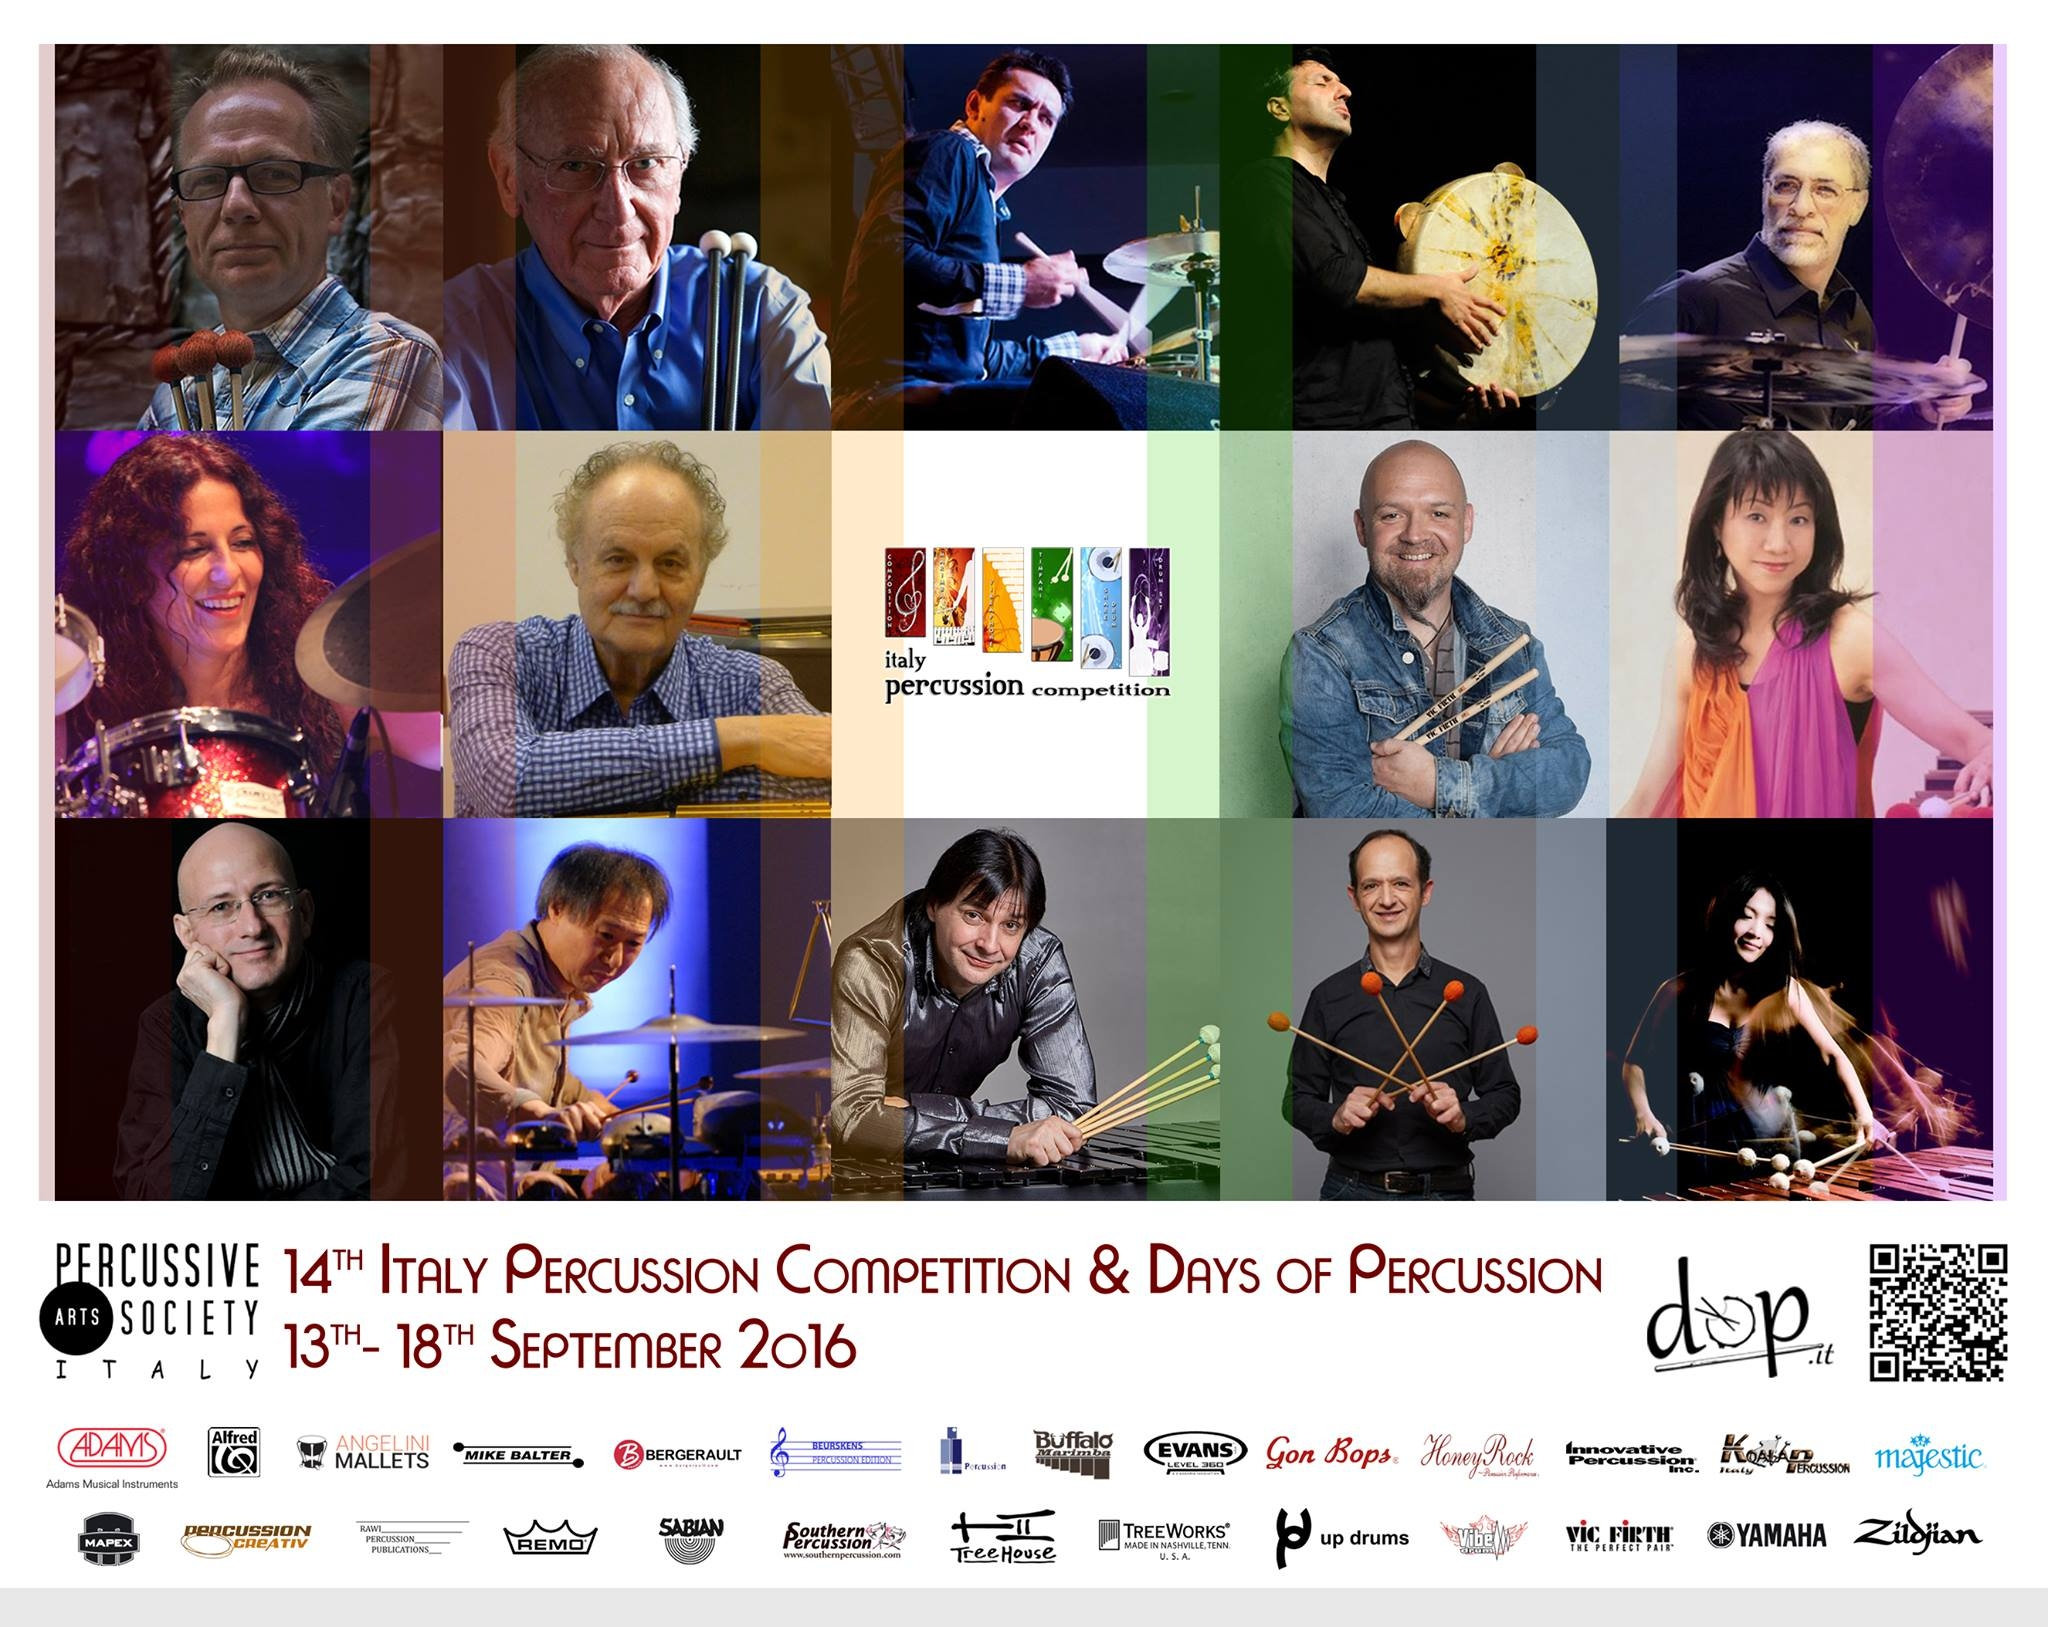 Artists of the 14th edition of Italy Percussion Competition